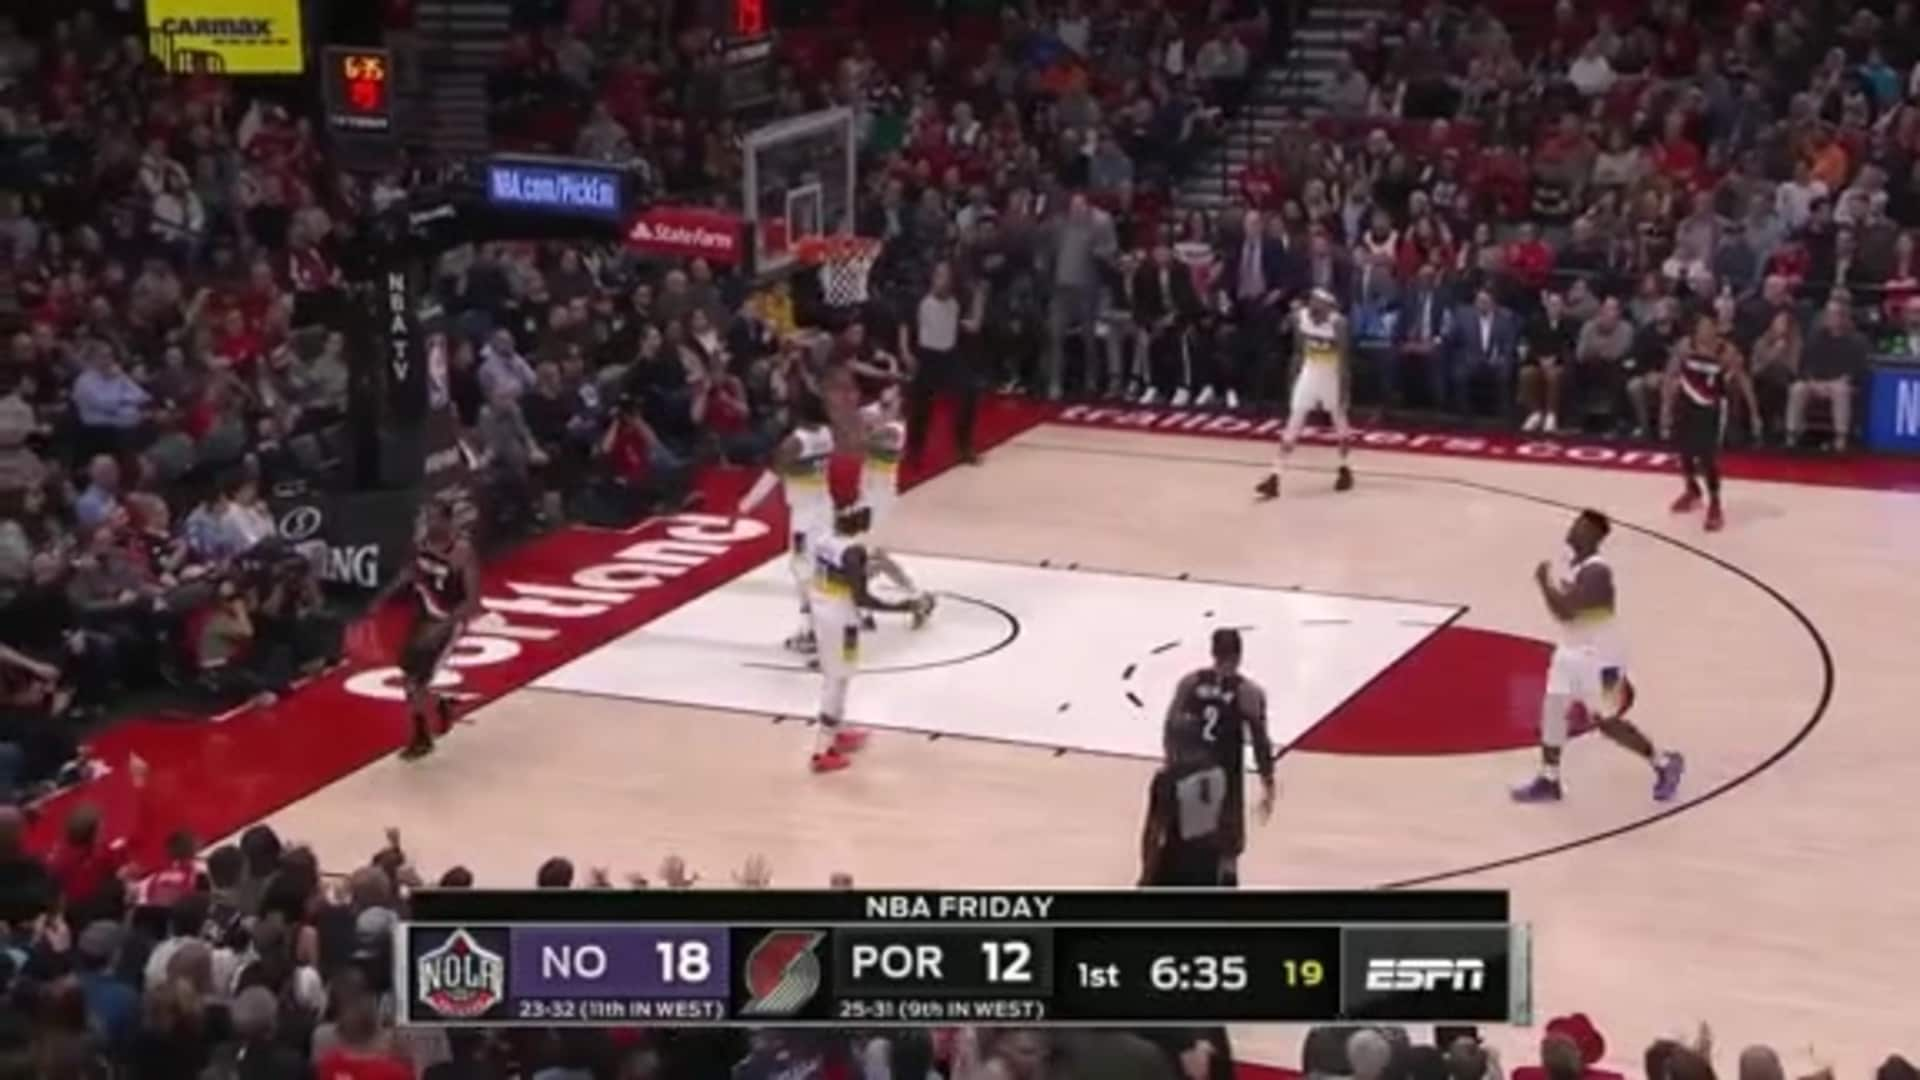 Trevor Ariza finishes on the fast break through contact